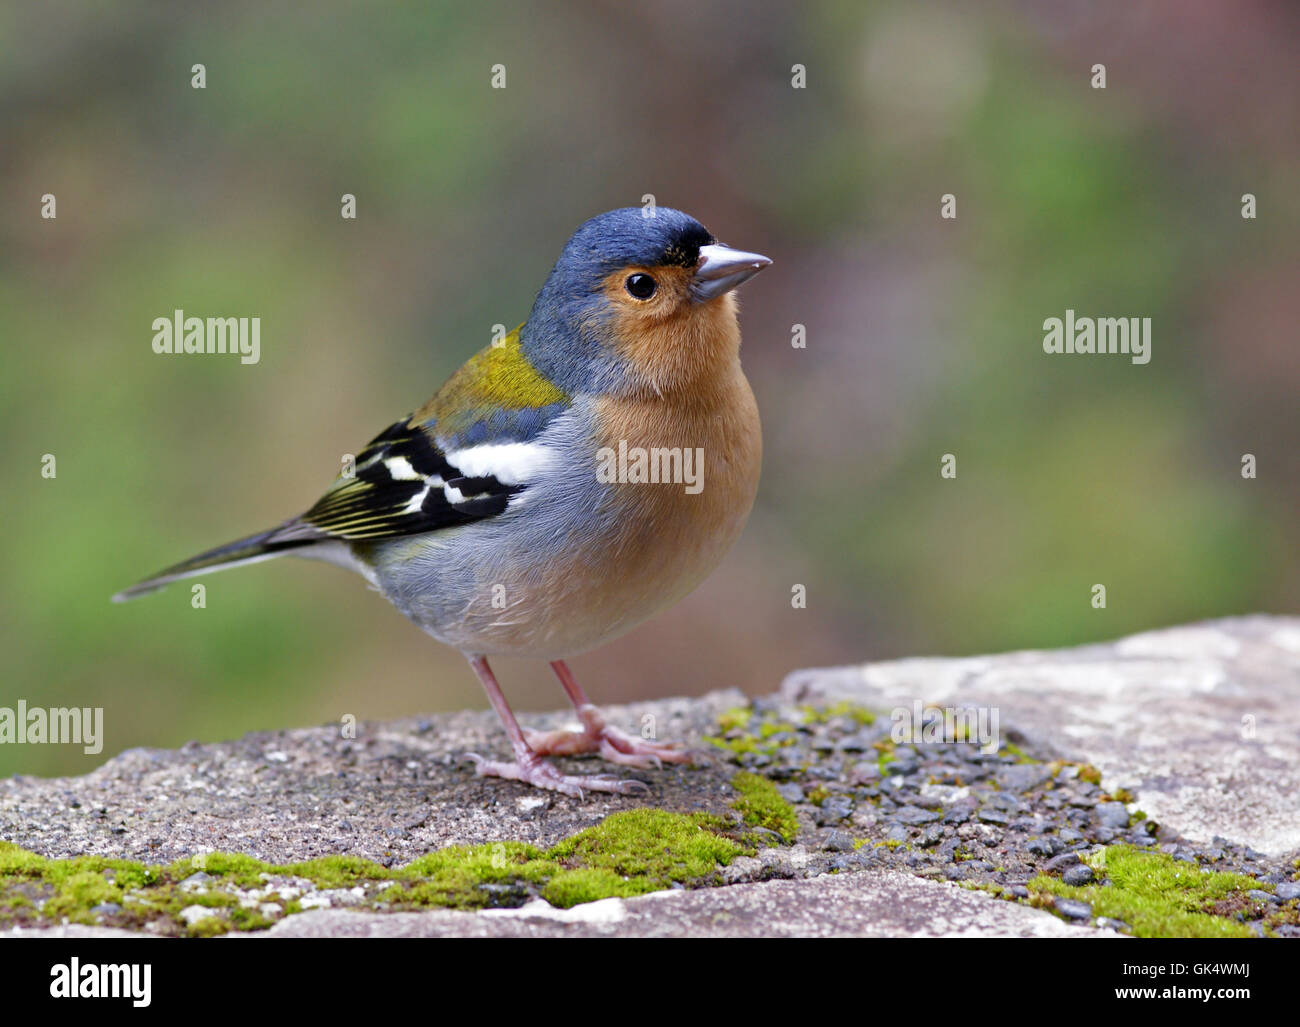 madeira chaffinch - Stock Image